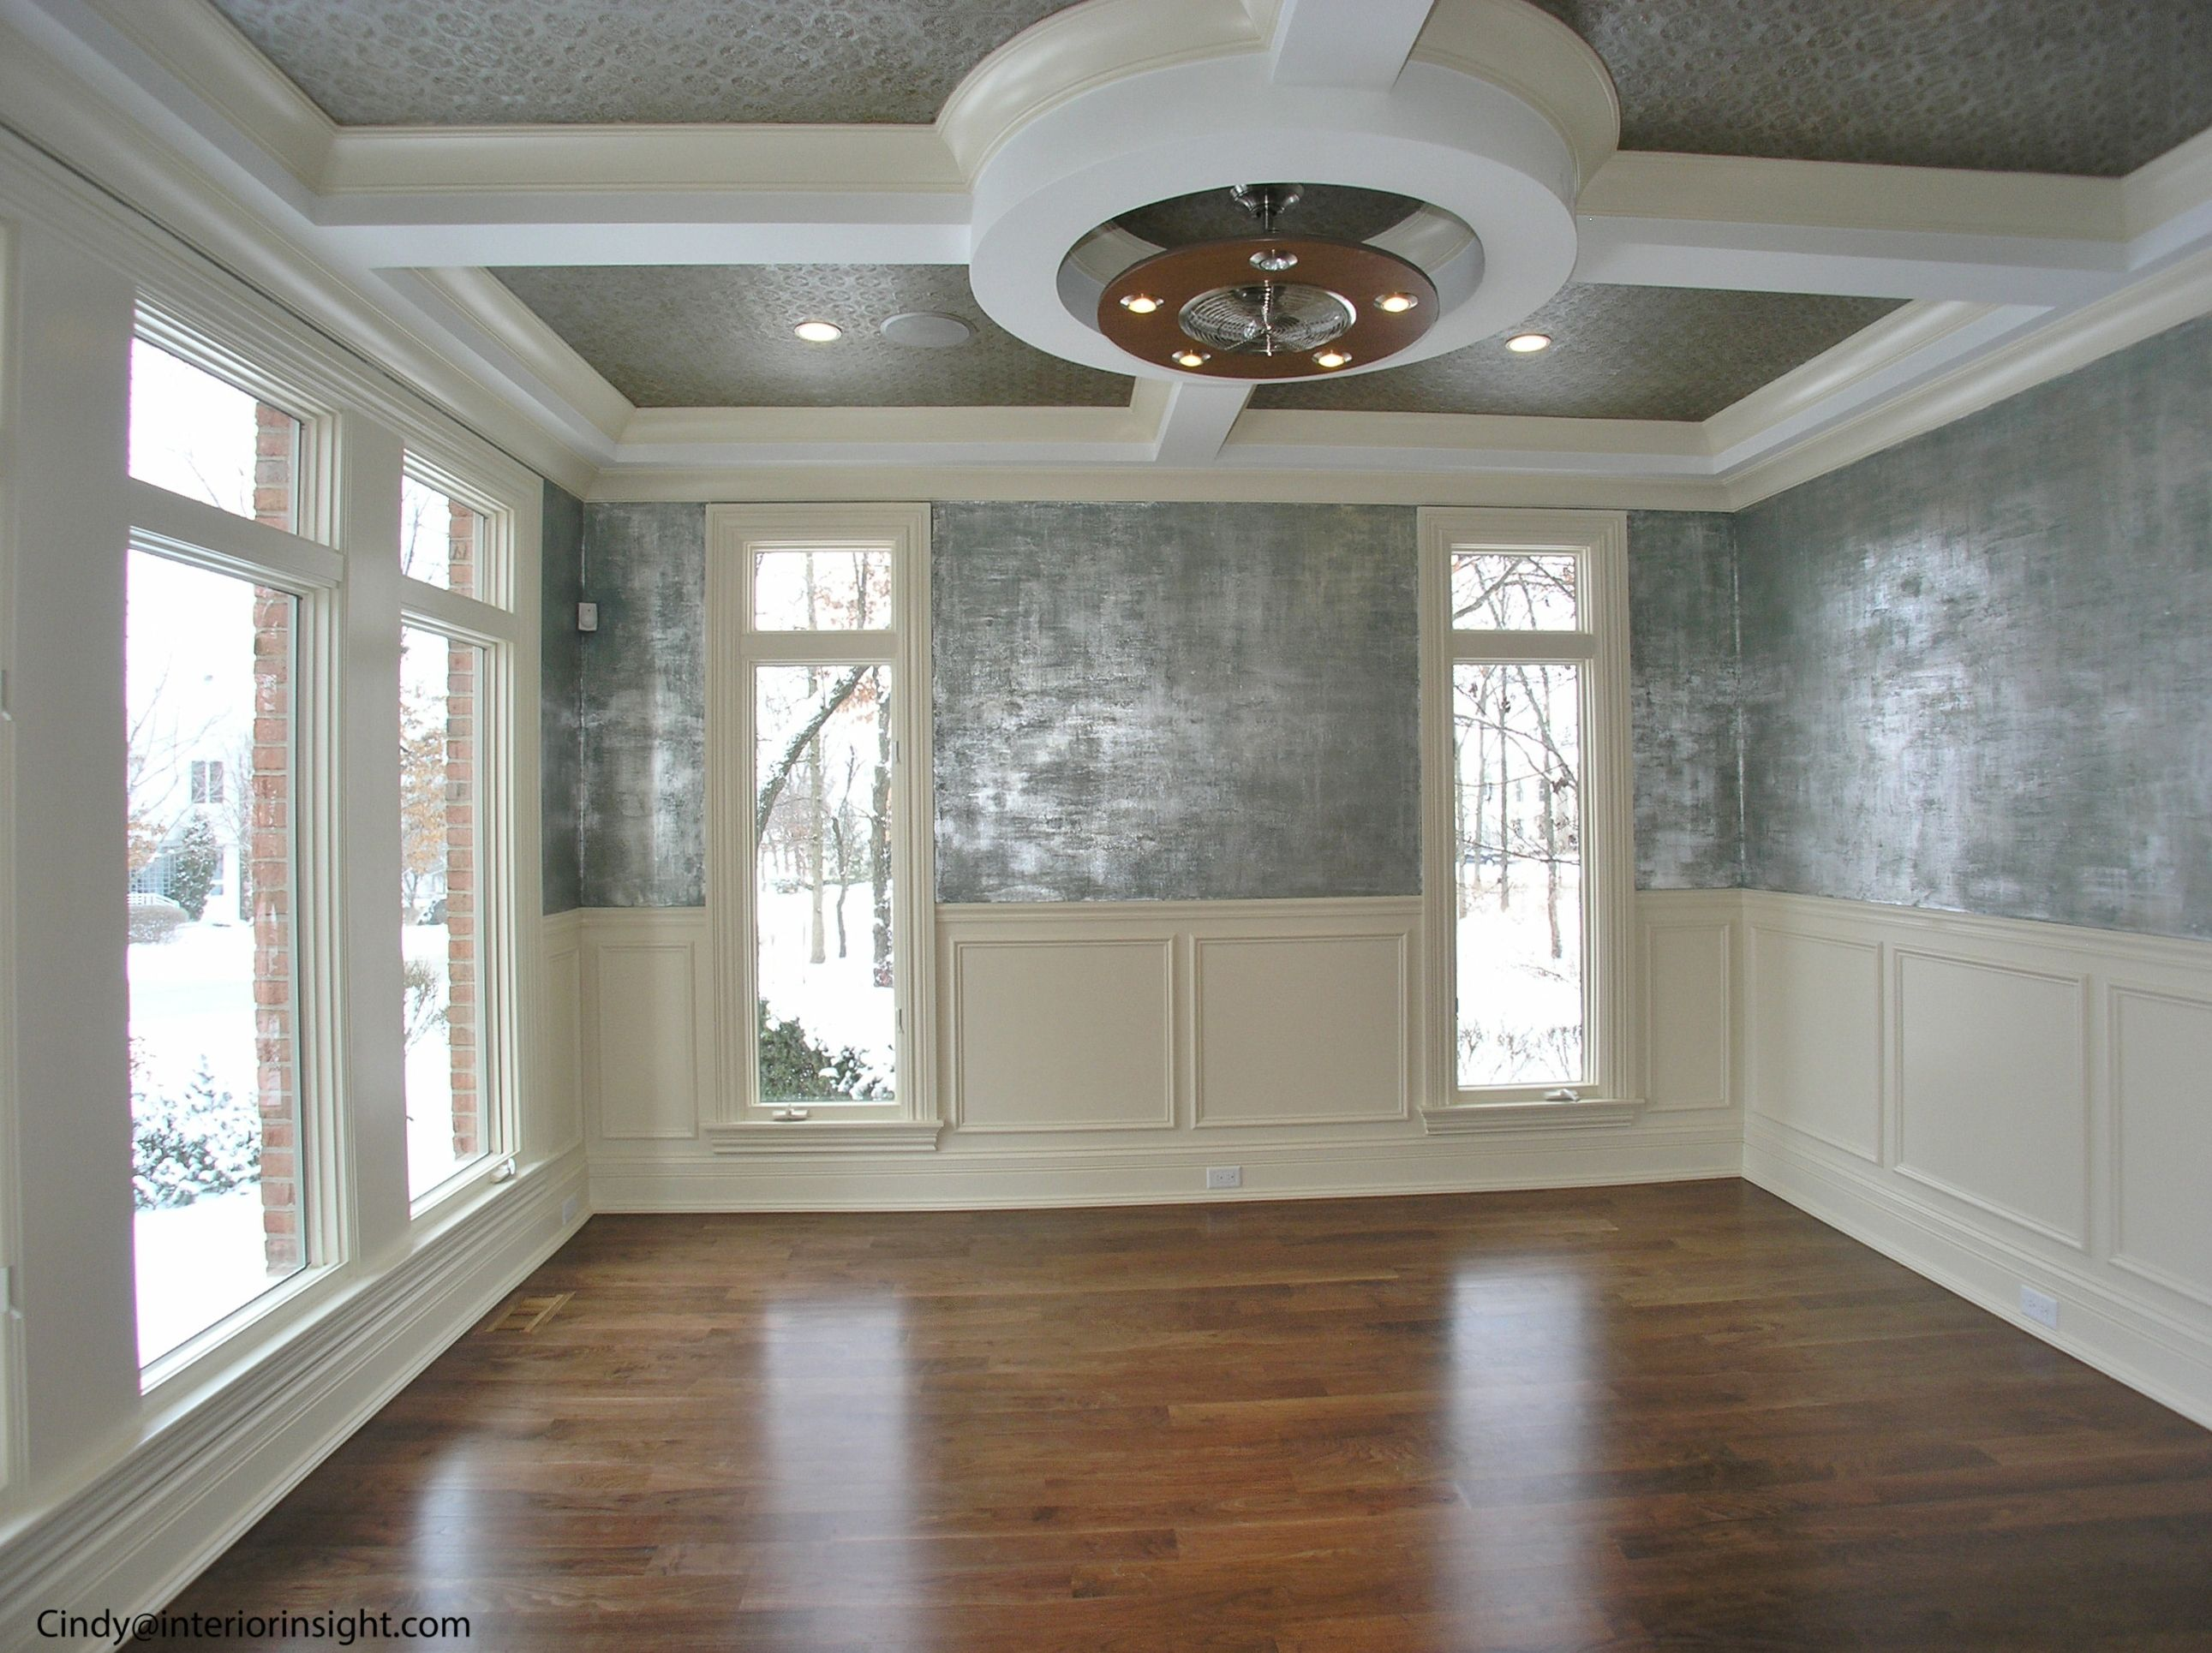 Unusual Wall Finishes : Living room with wainscoting coffiered ceiling metalic